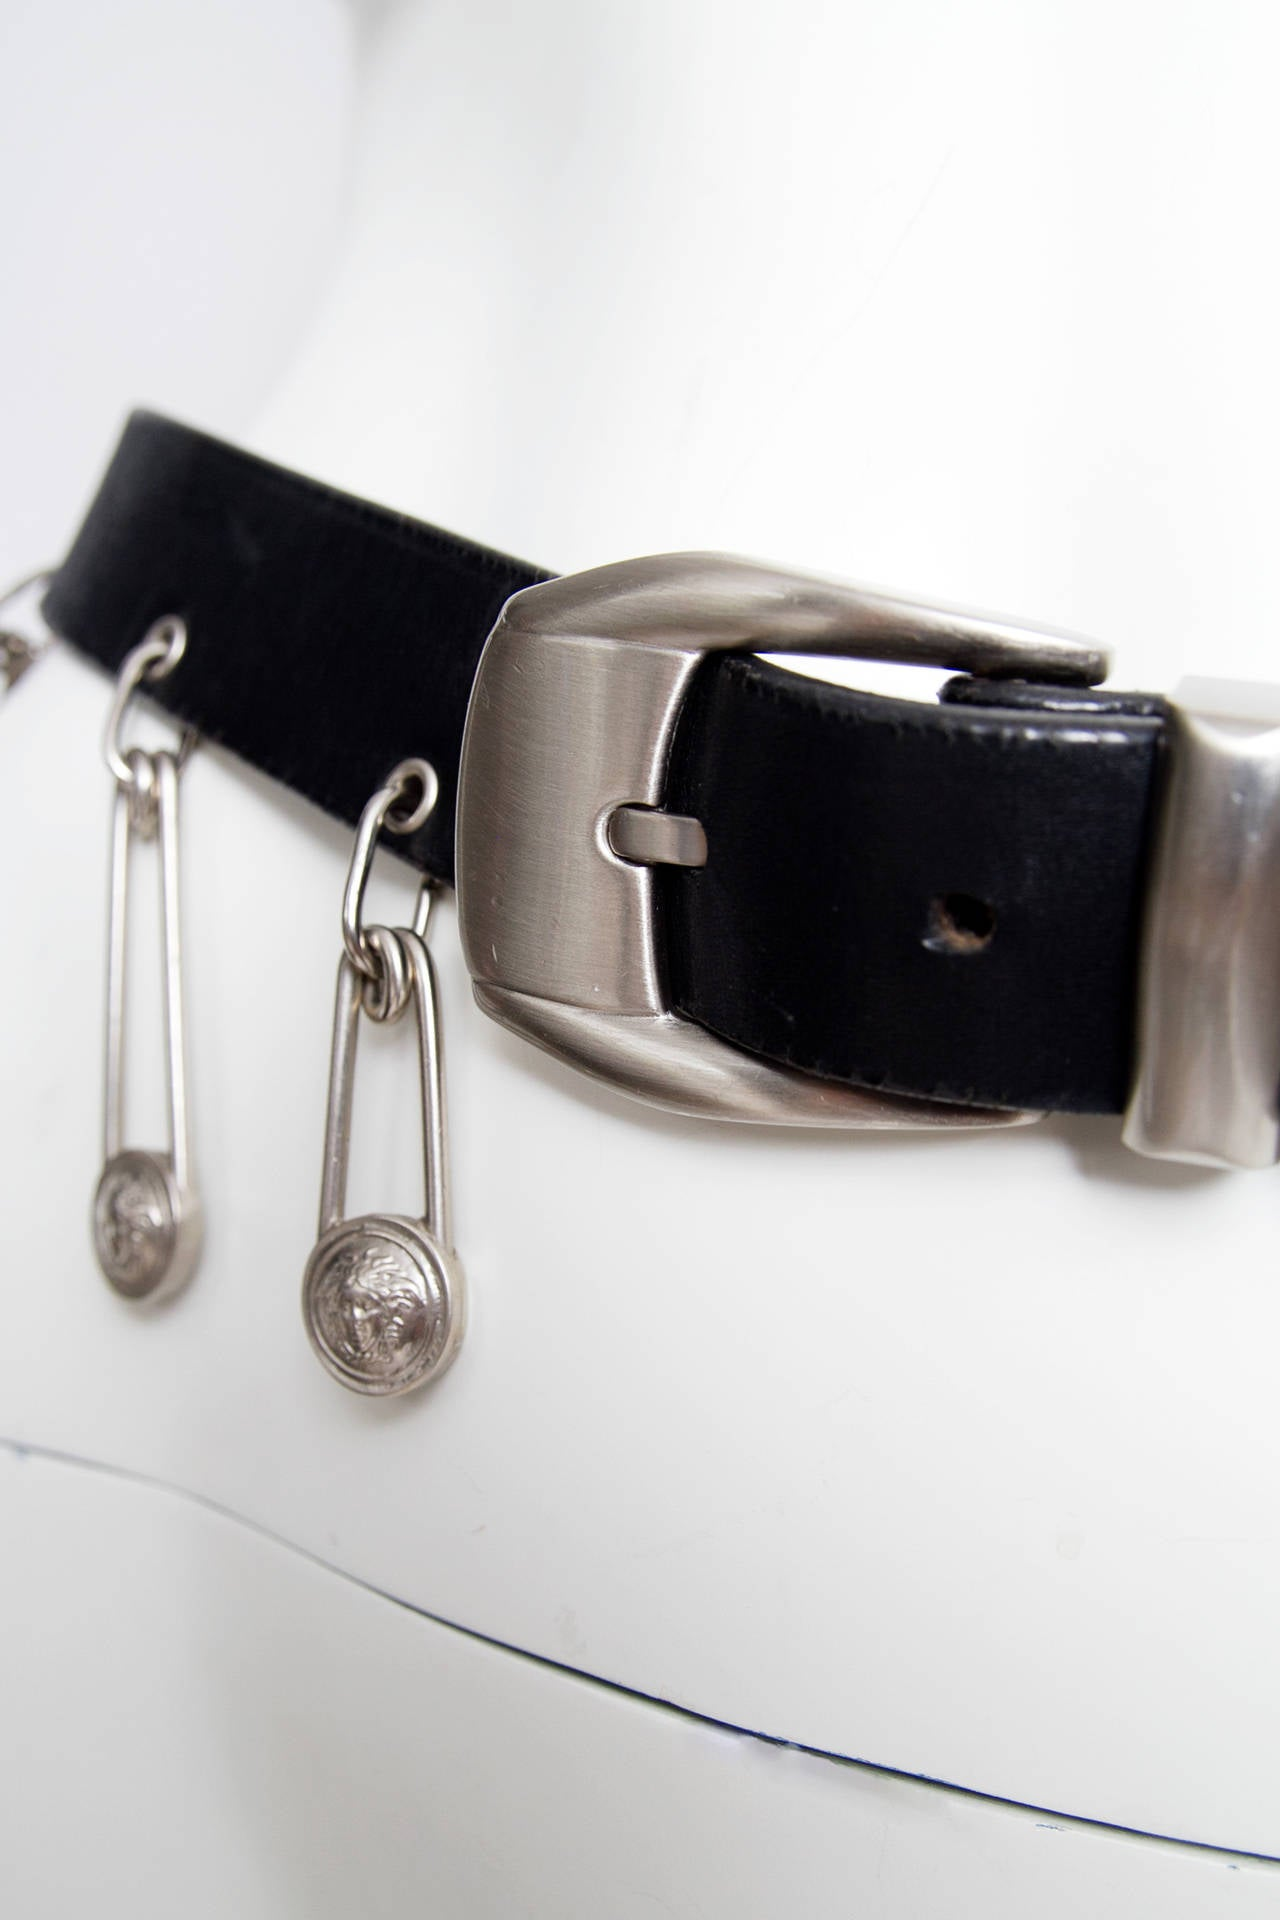 1990s Gianni Versace Black Leather Safety Pin Belt at 1stdibs